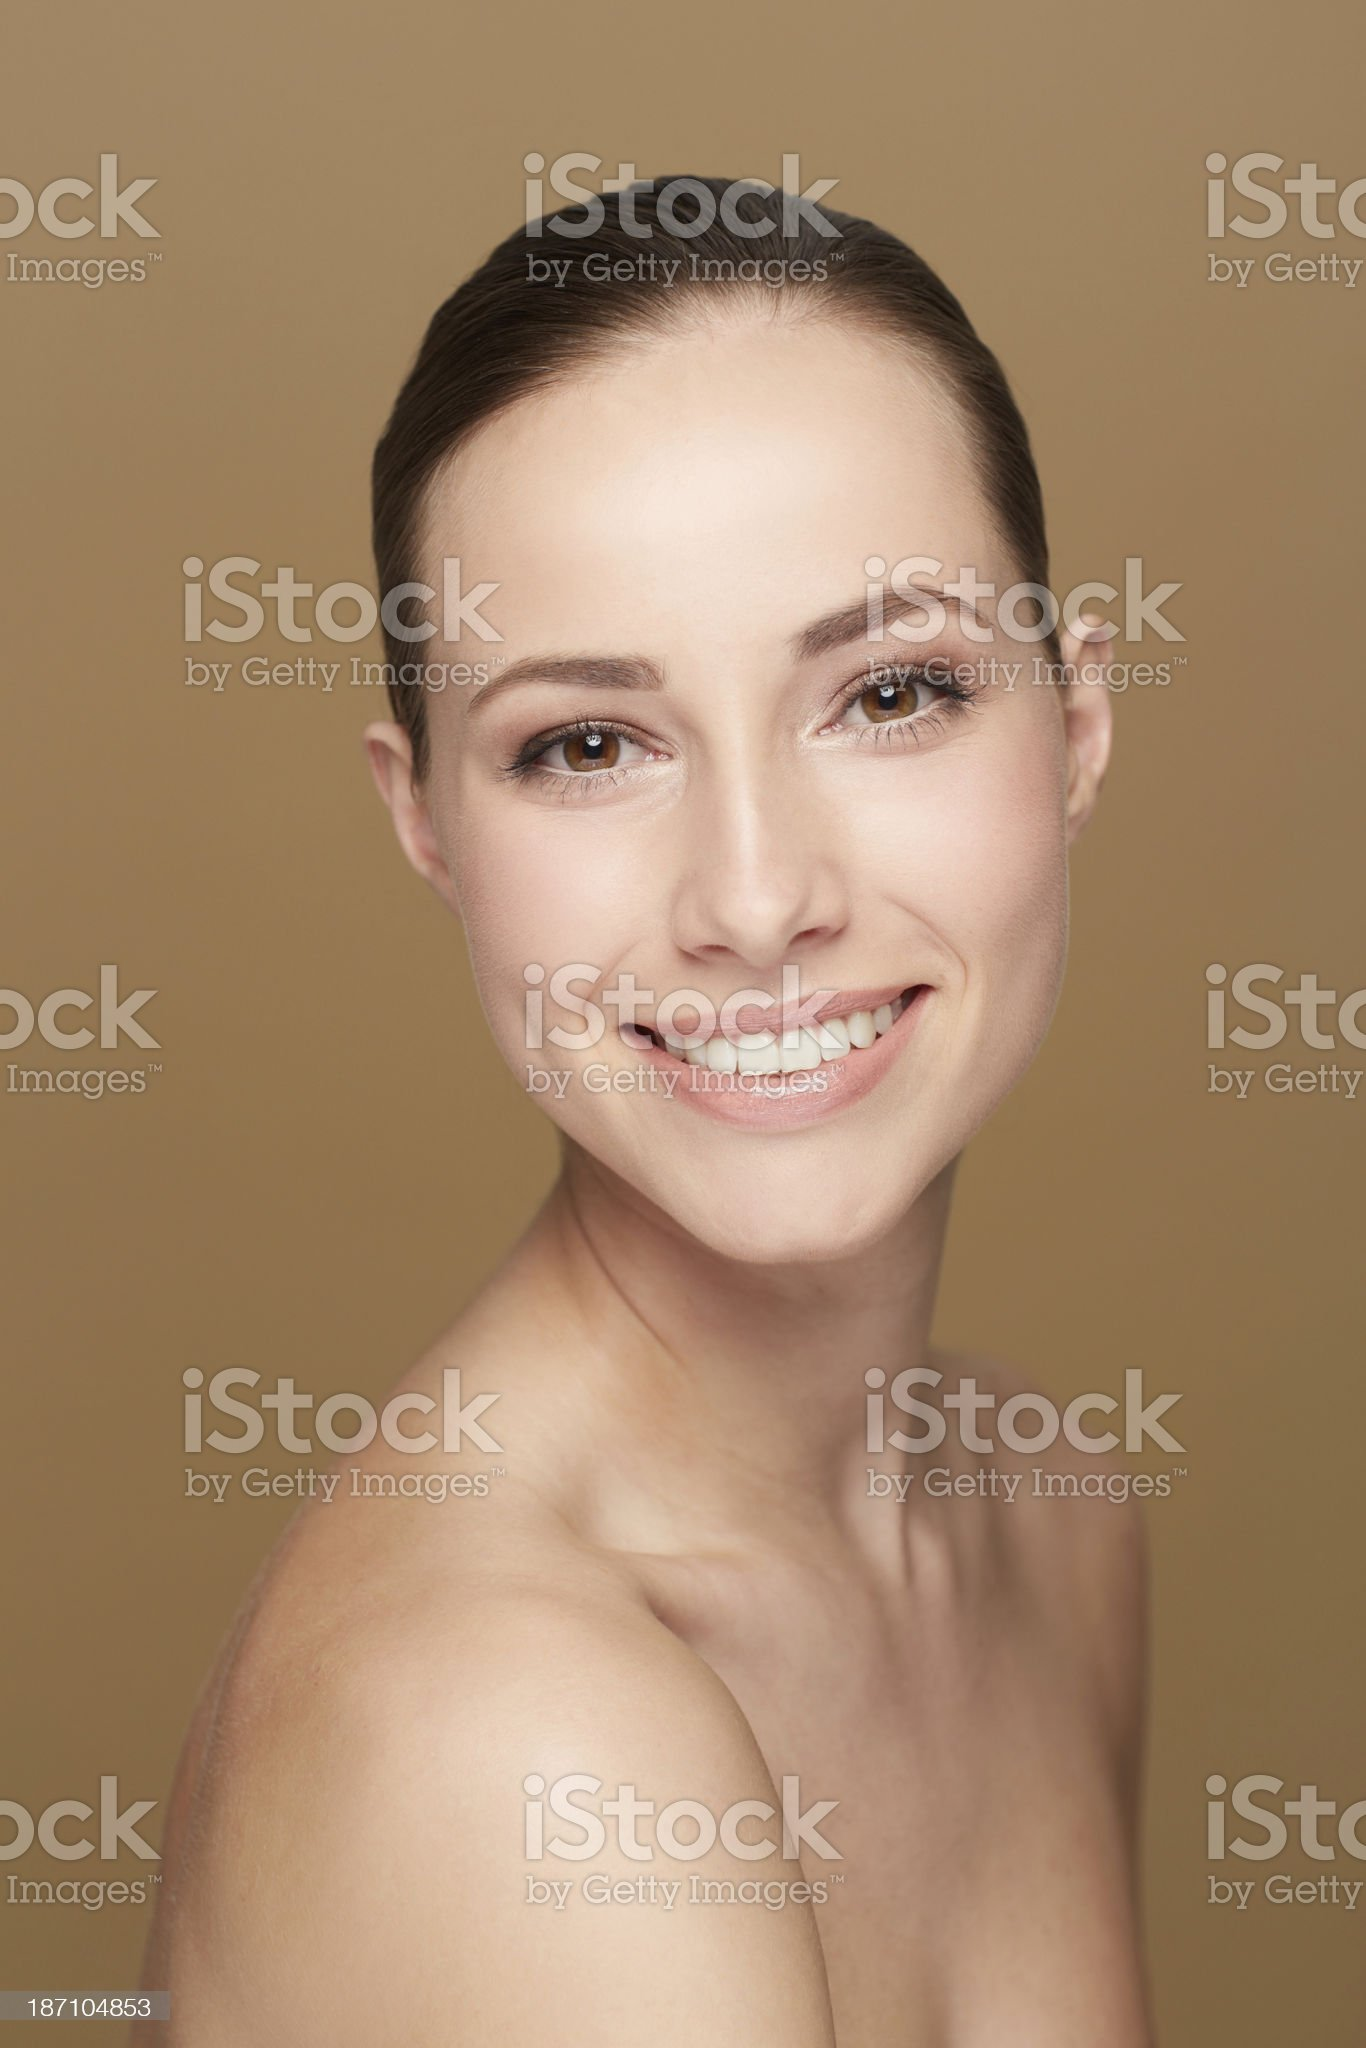 What a brilliant smile! royalty-free stock photo